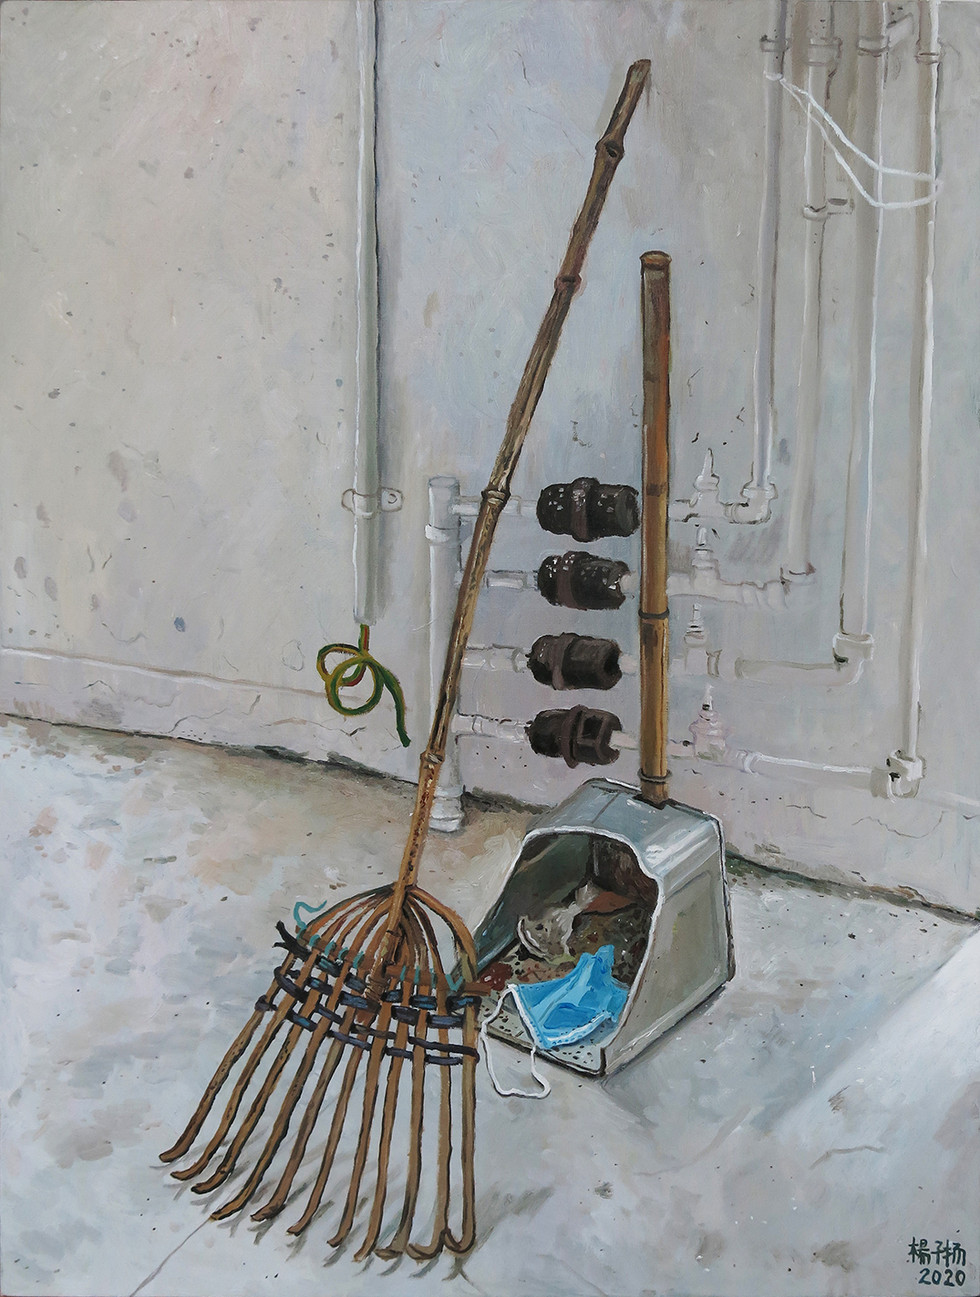 Broom and Dustpan, 2020, Oil on canvas, 122 x 92cm  Private Collection, Singapore